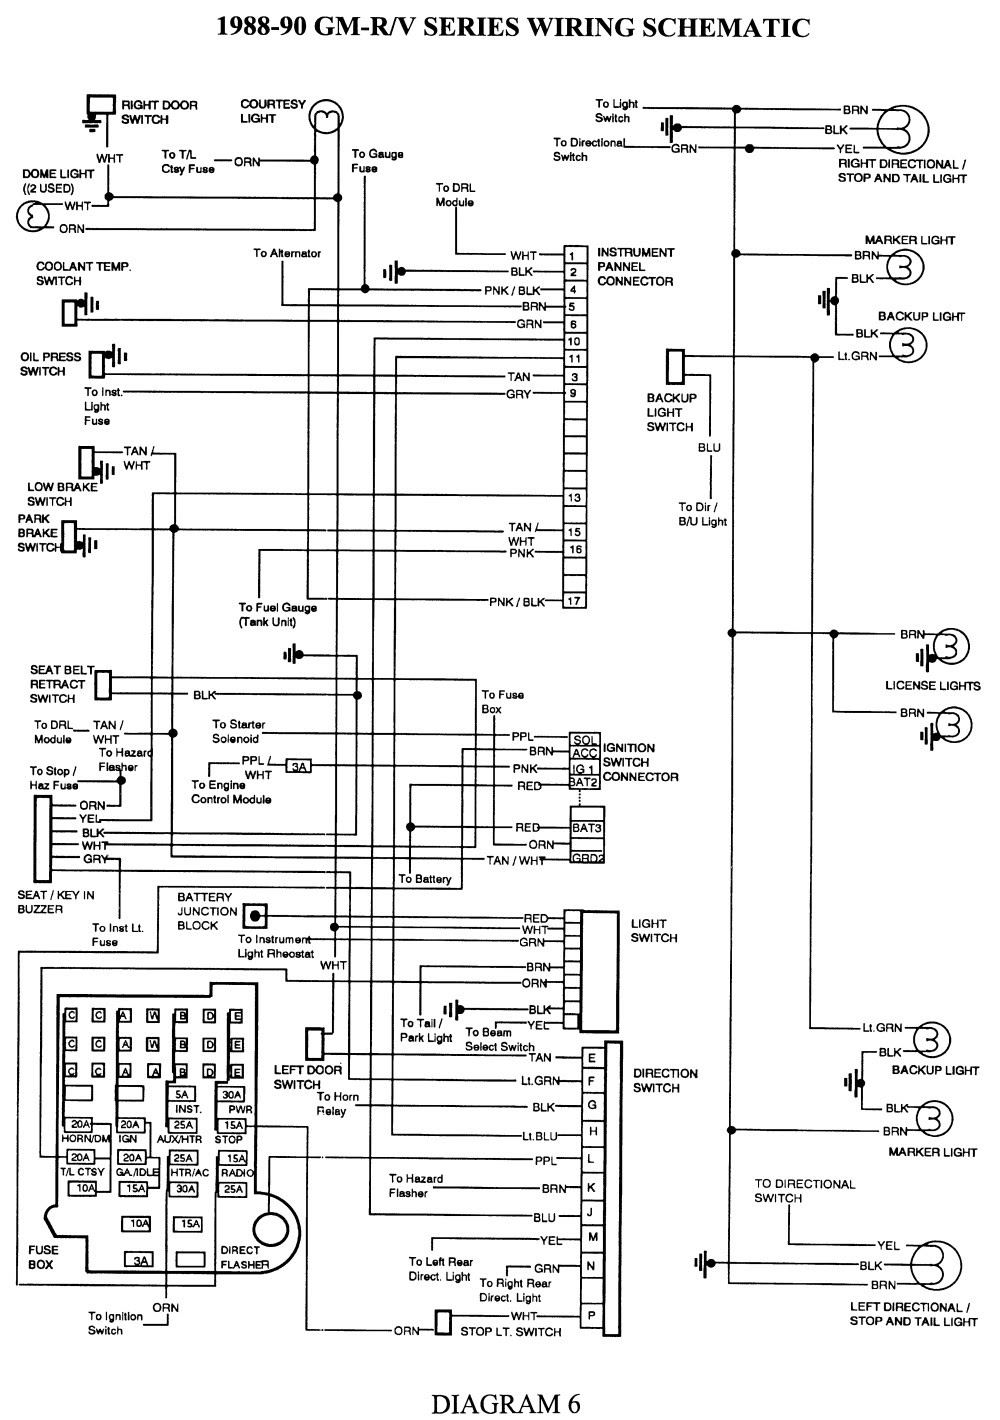 Diagram 2001 Silverado Tail Light Wiring Diagram Full Version Hd Quality Wiring Diagram Electricmotor5 Enoteche Italiane It